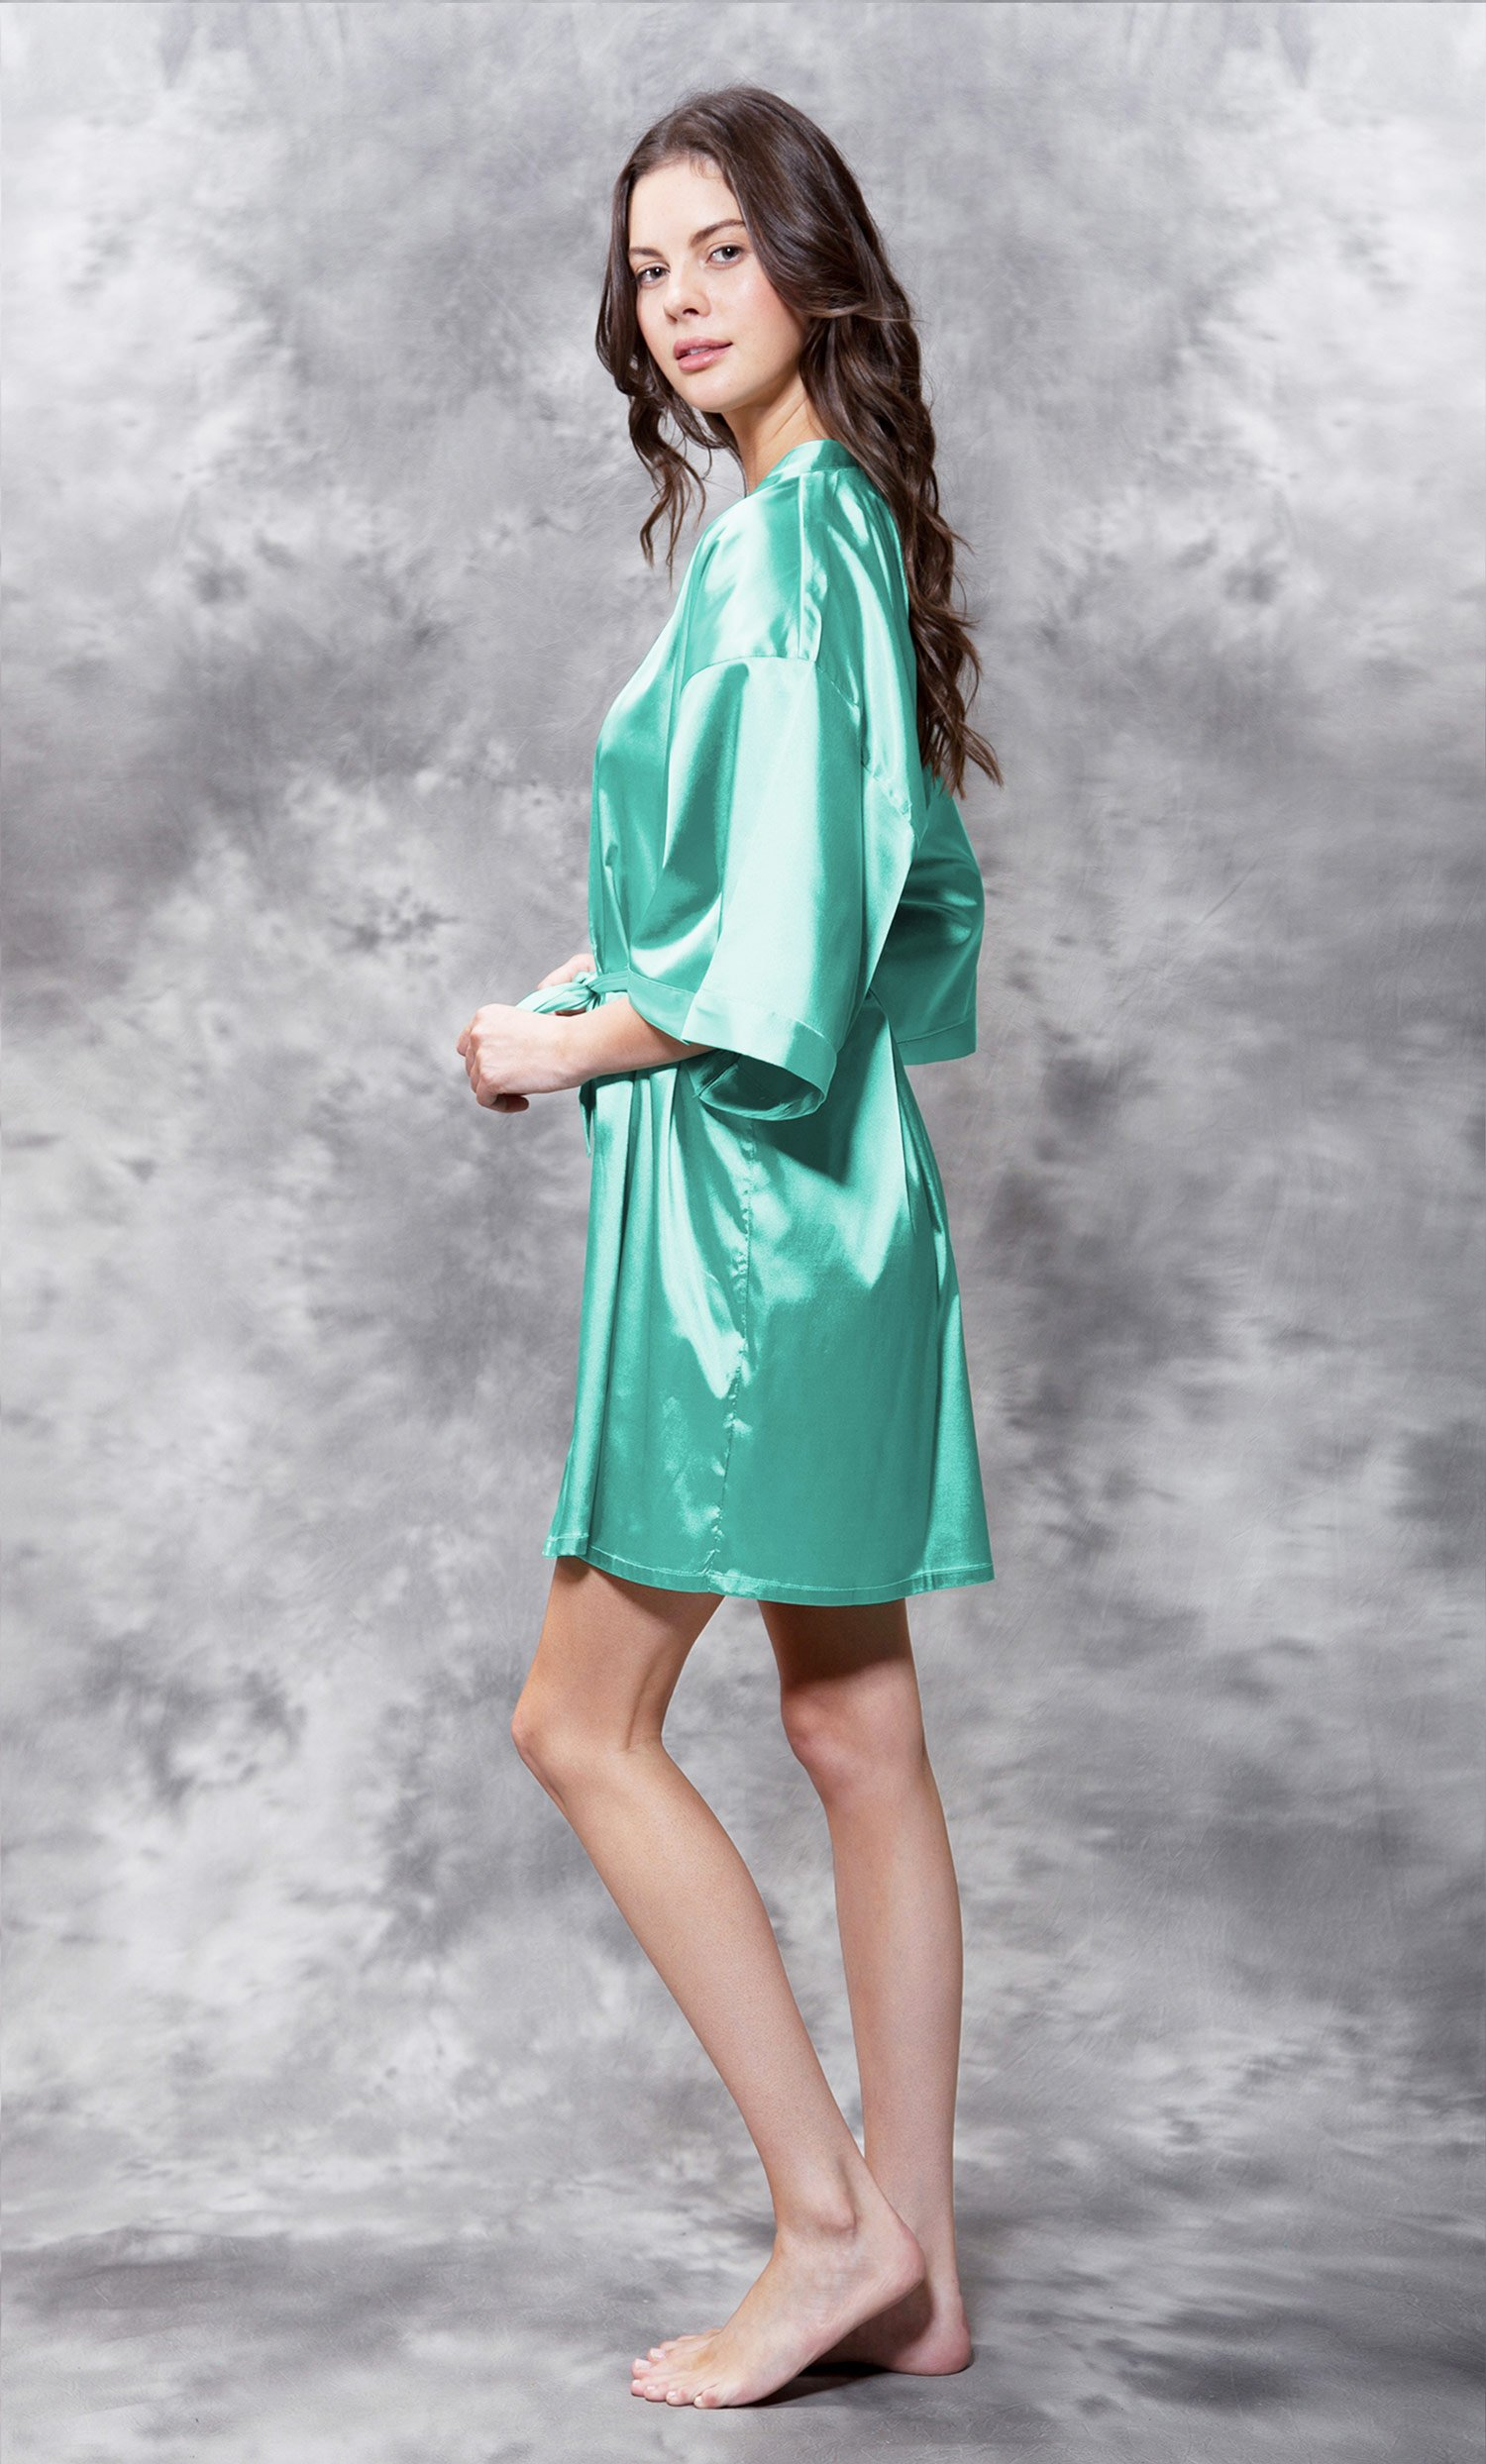 Matron of Honor Clear Rhinestone Satin Kimono Mint Green Short Robe-Robemart.com